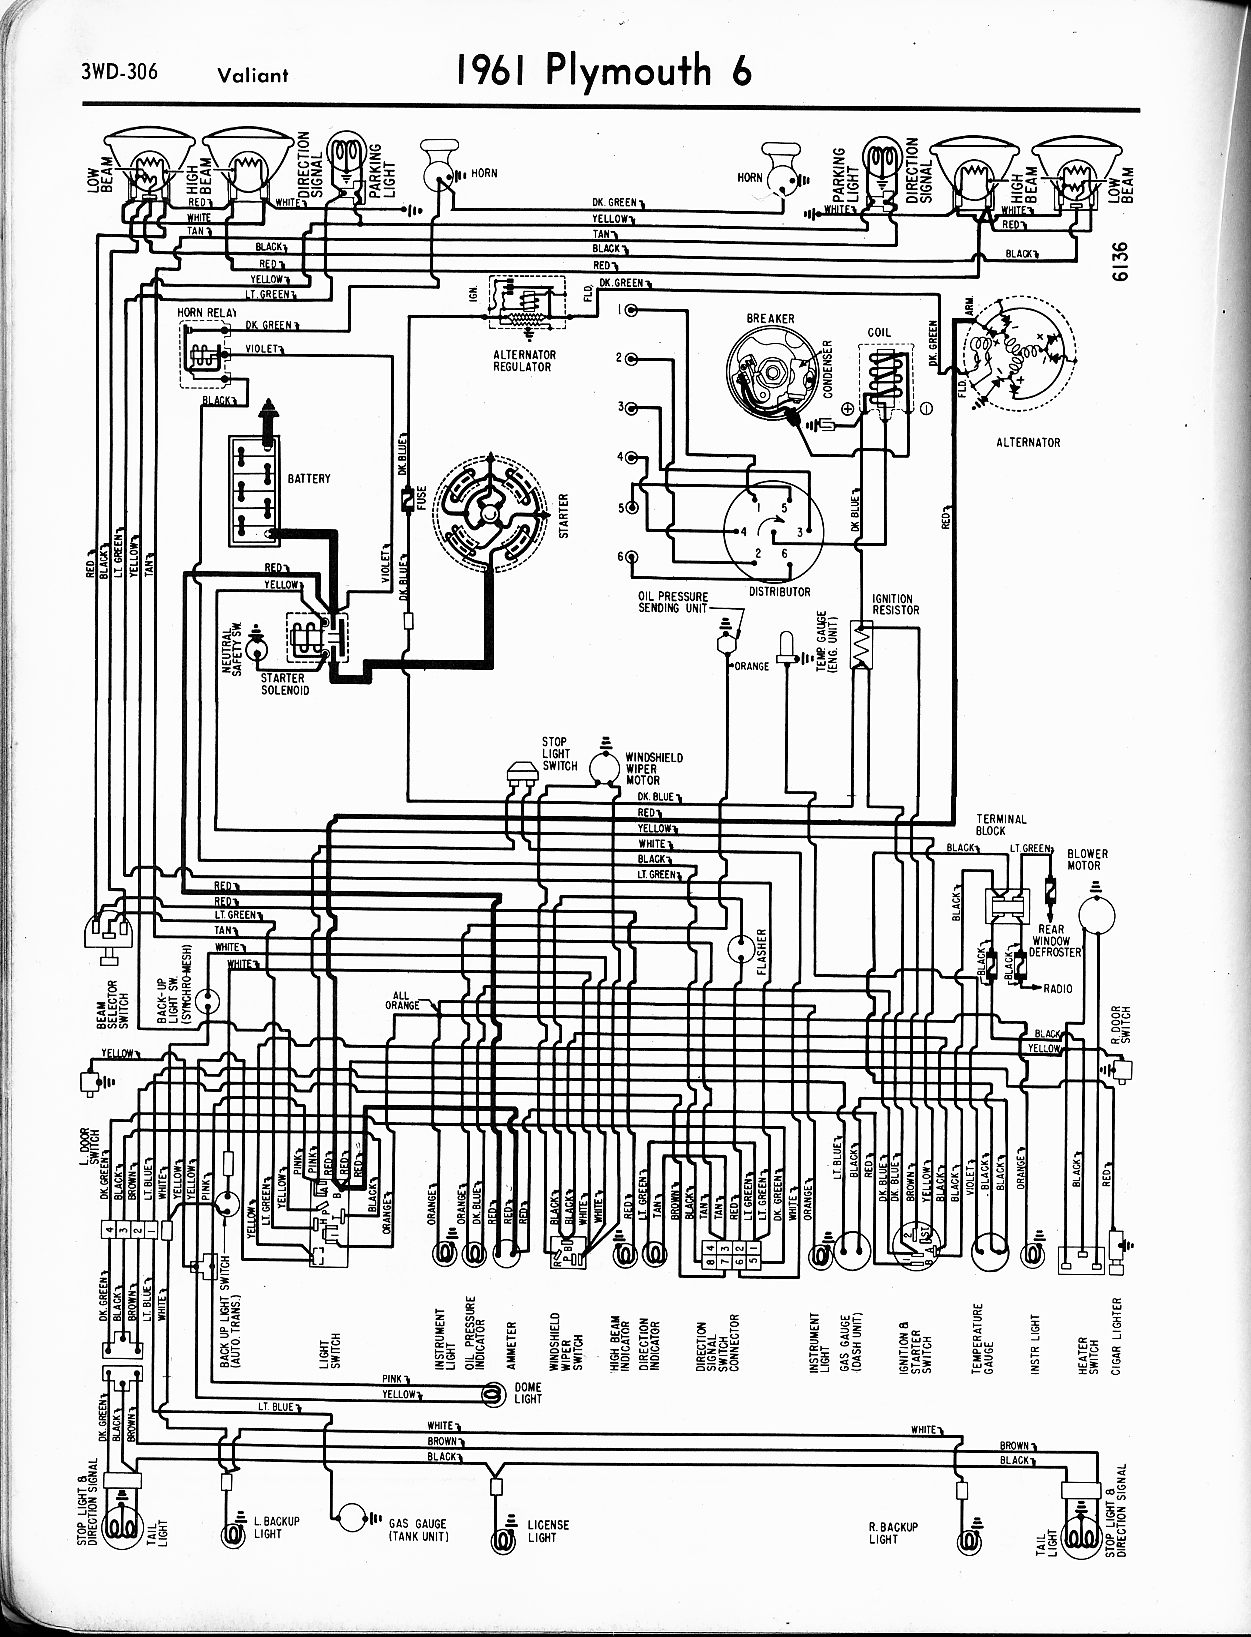 74 dodge 318 engine wiring diagram imageresizertool com 1965 dodge dart wiring diagram 1966 dodge charger [ 1251 x 1637 Pixel ]